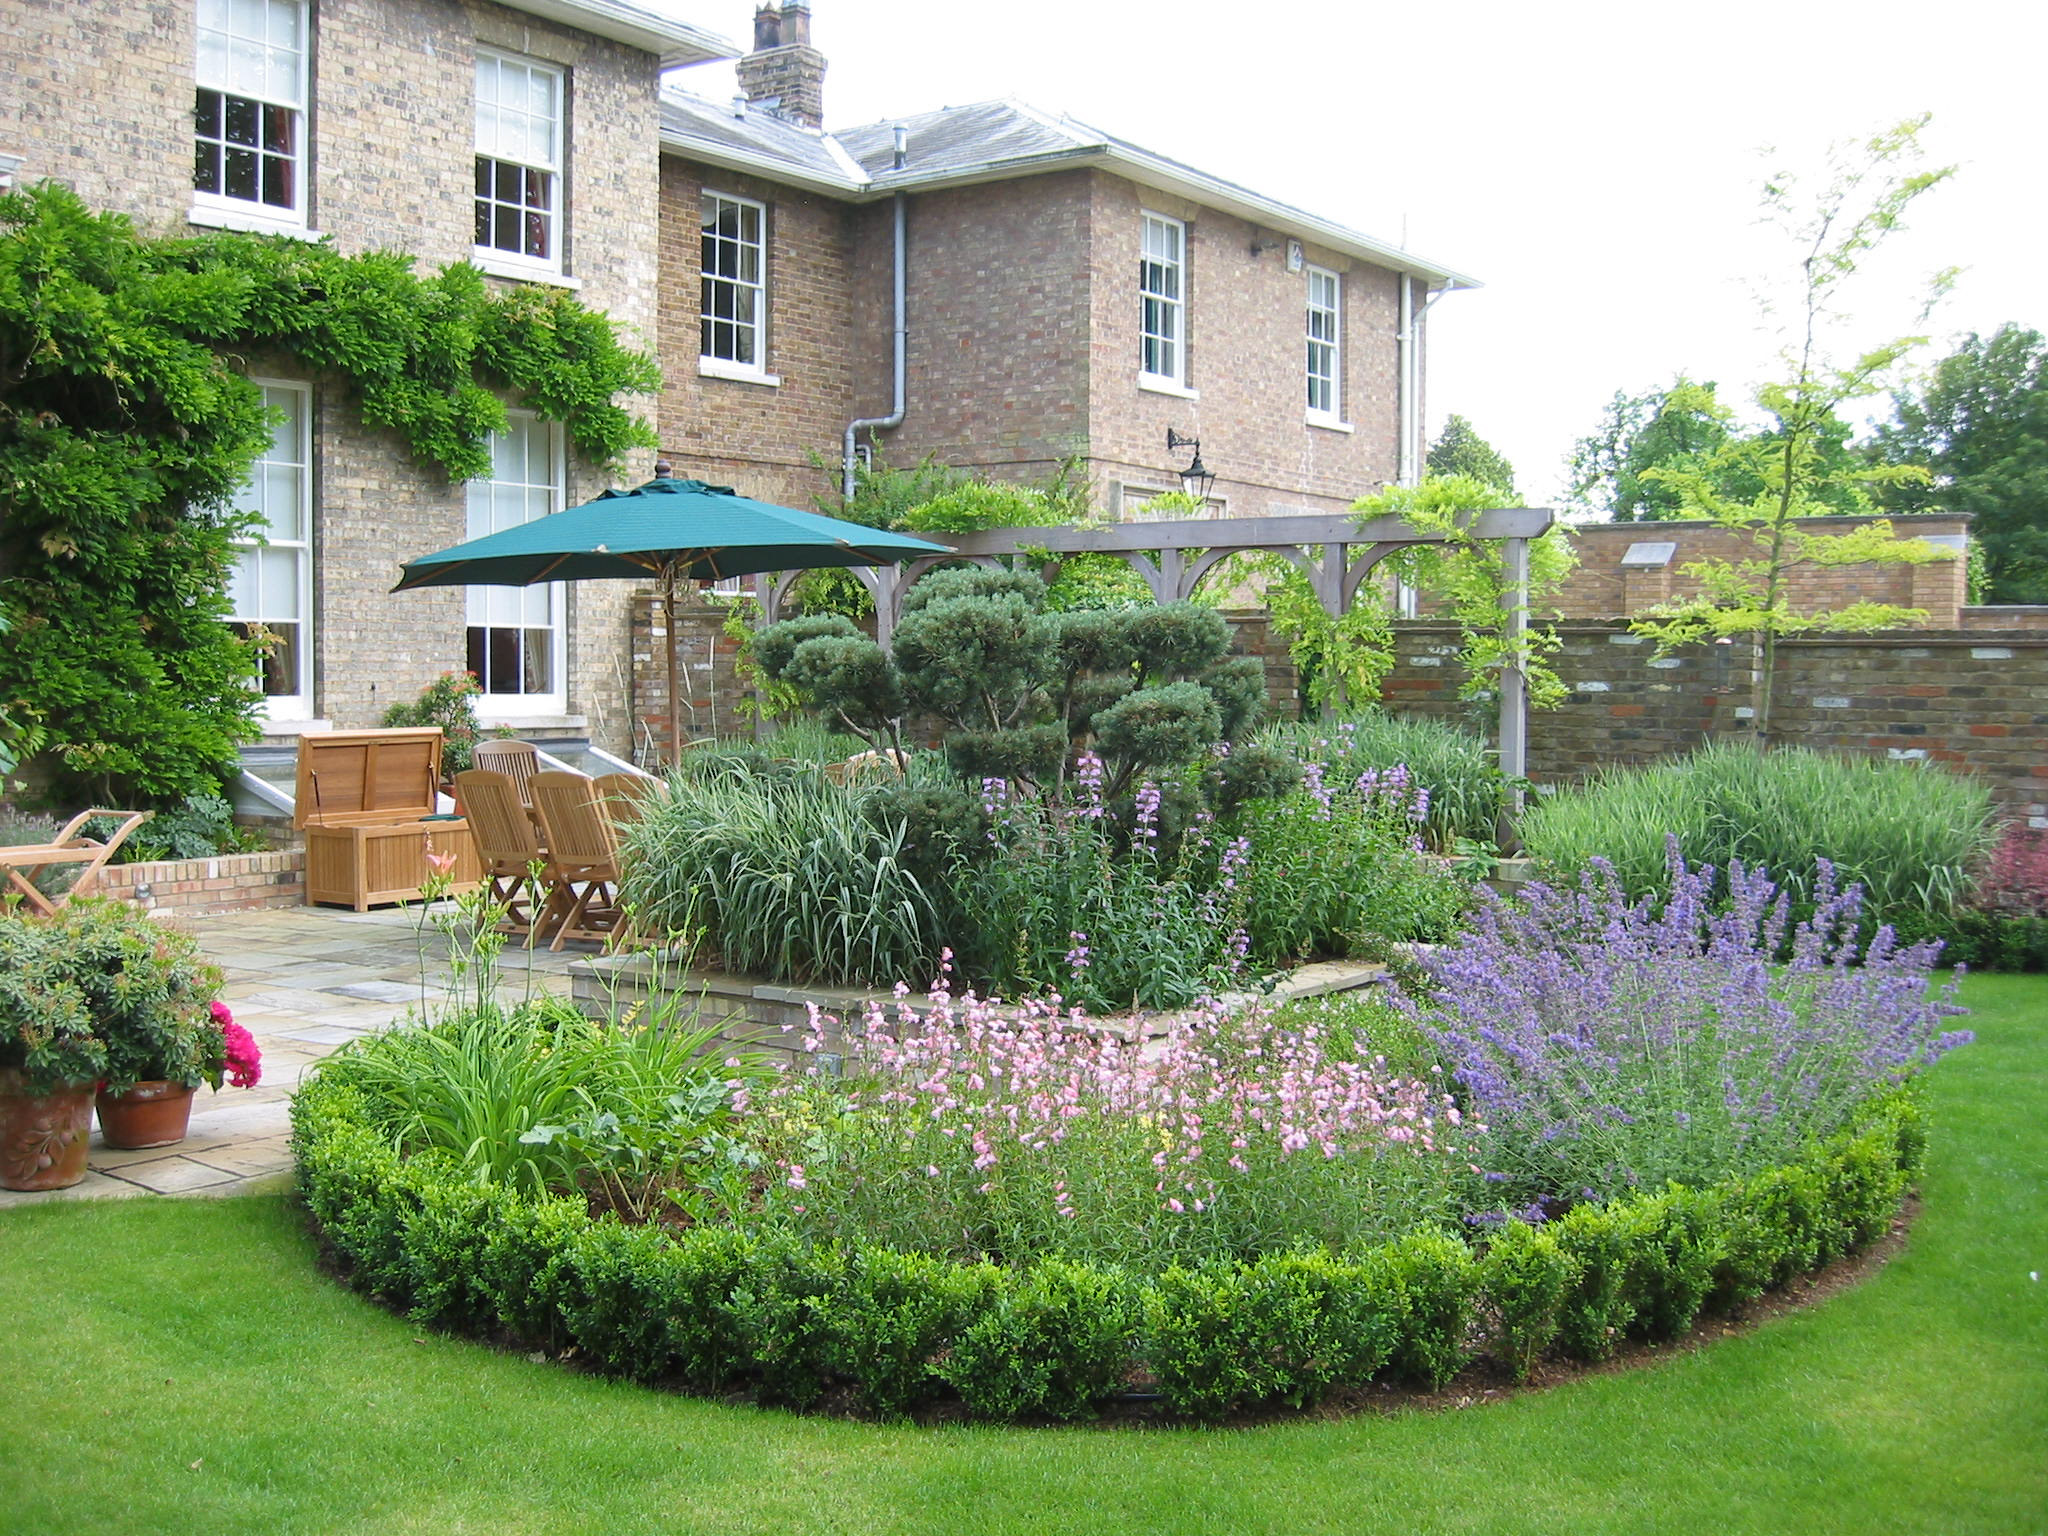 Best Landscape Designs to Have a Beautiful Garden - Cool ... on Best Backyard Designs id=12617